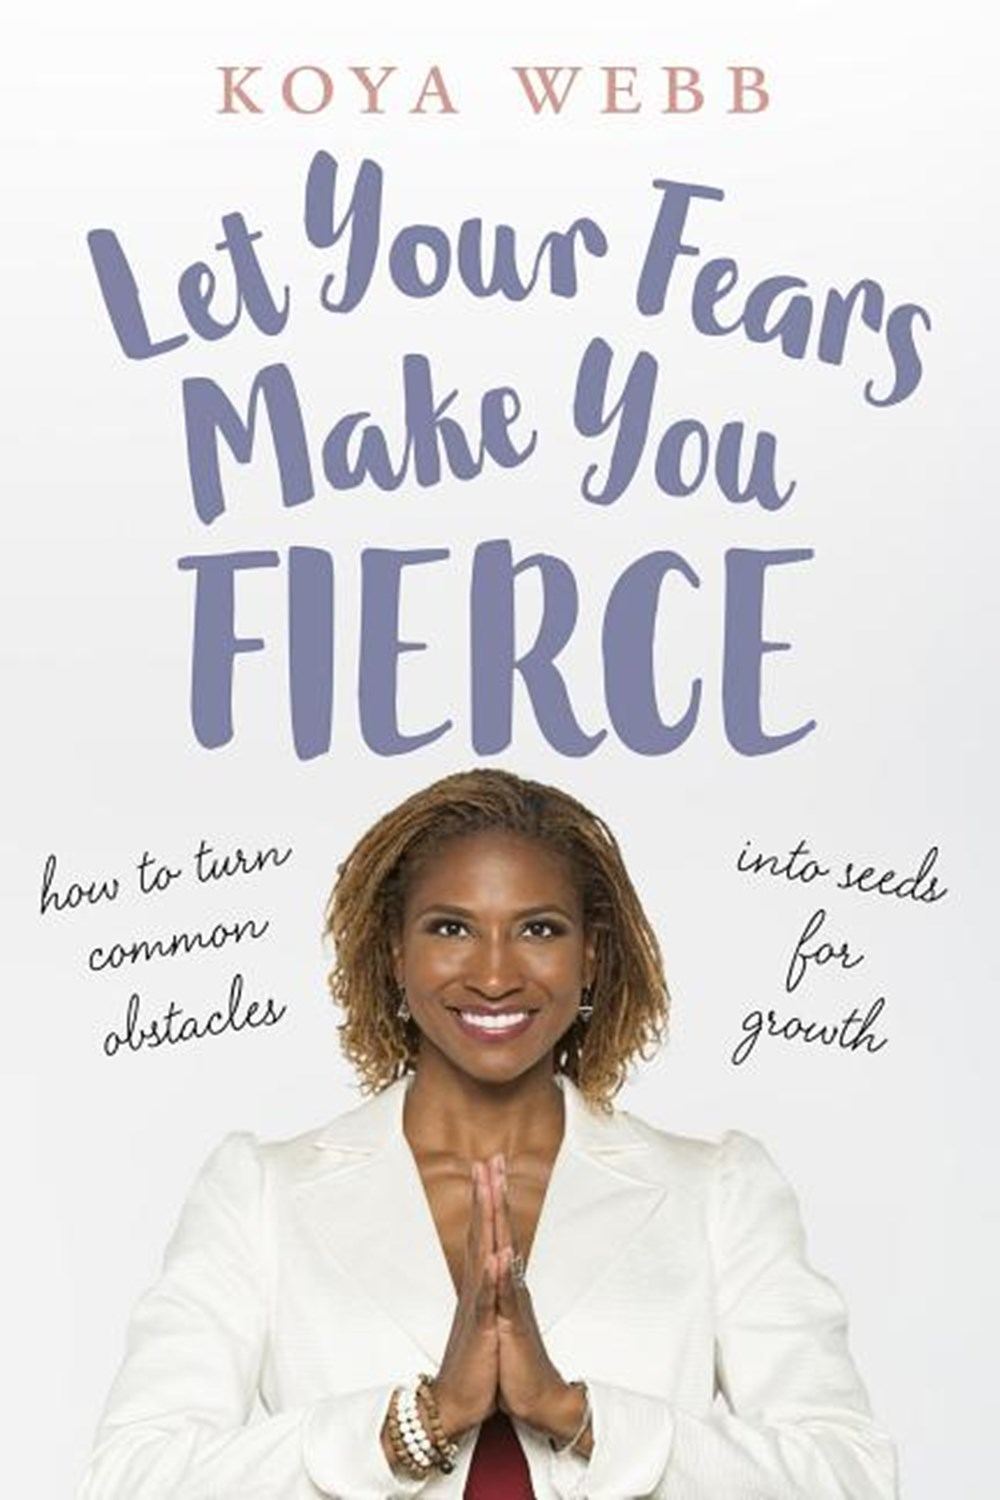 Let Your Fears Make You Fierce How to Turn Common Obstacles Into Seeds for Growth